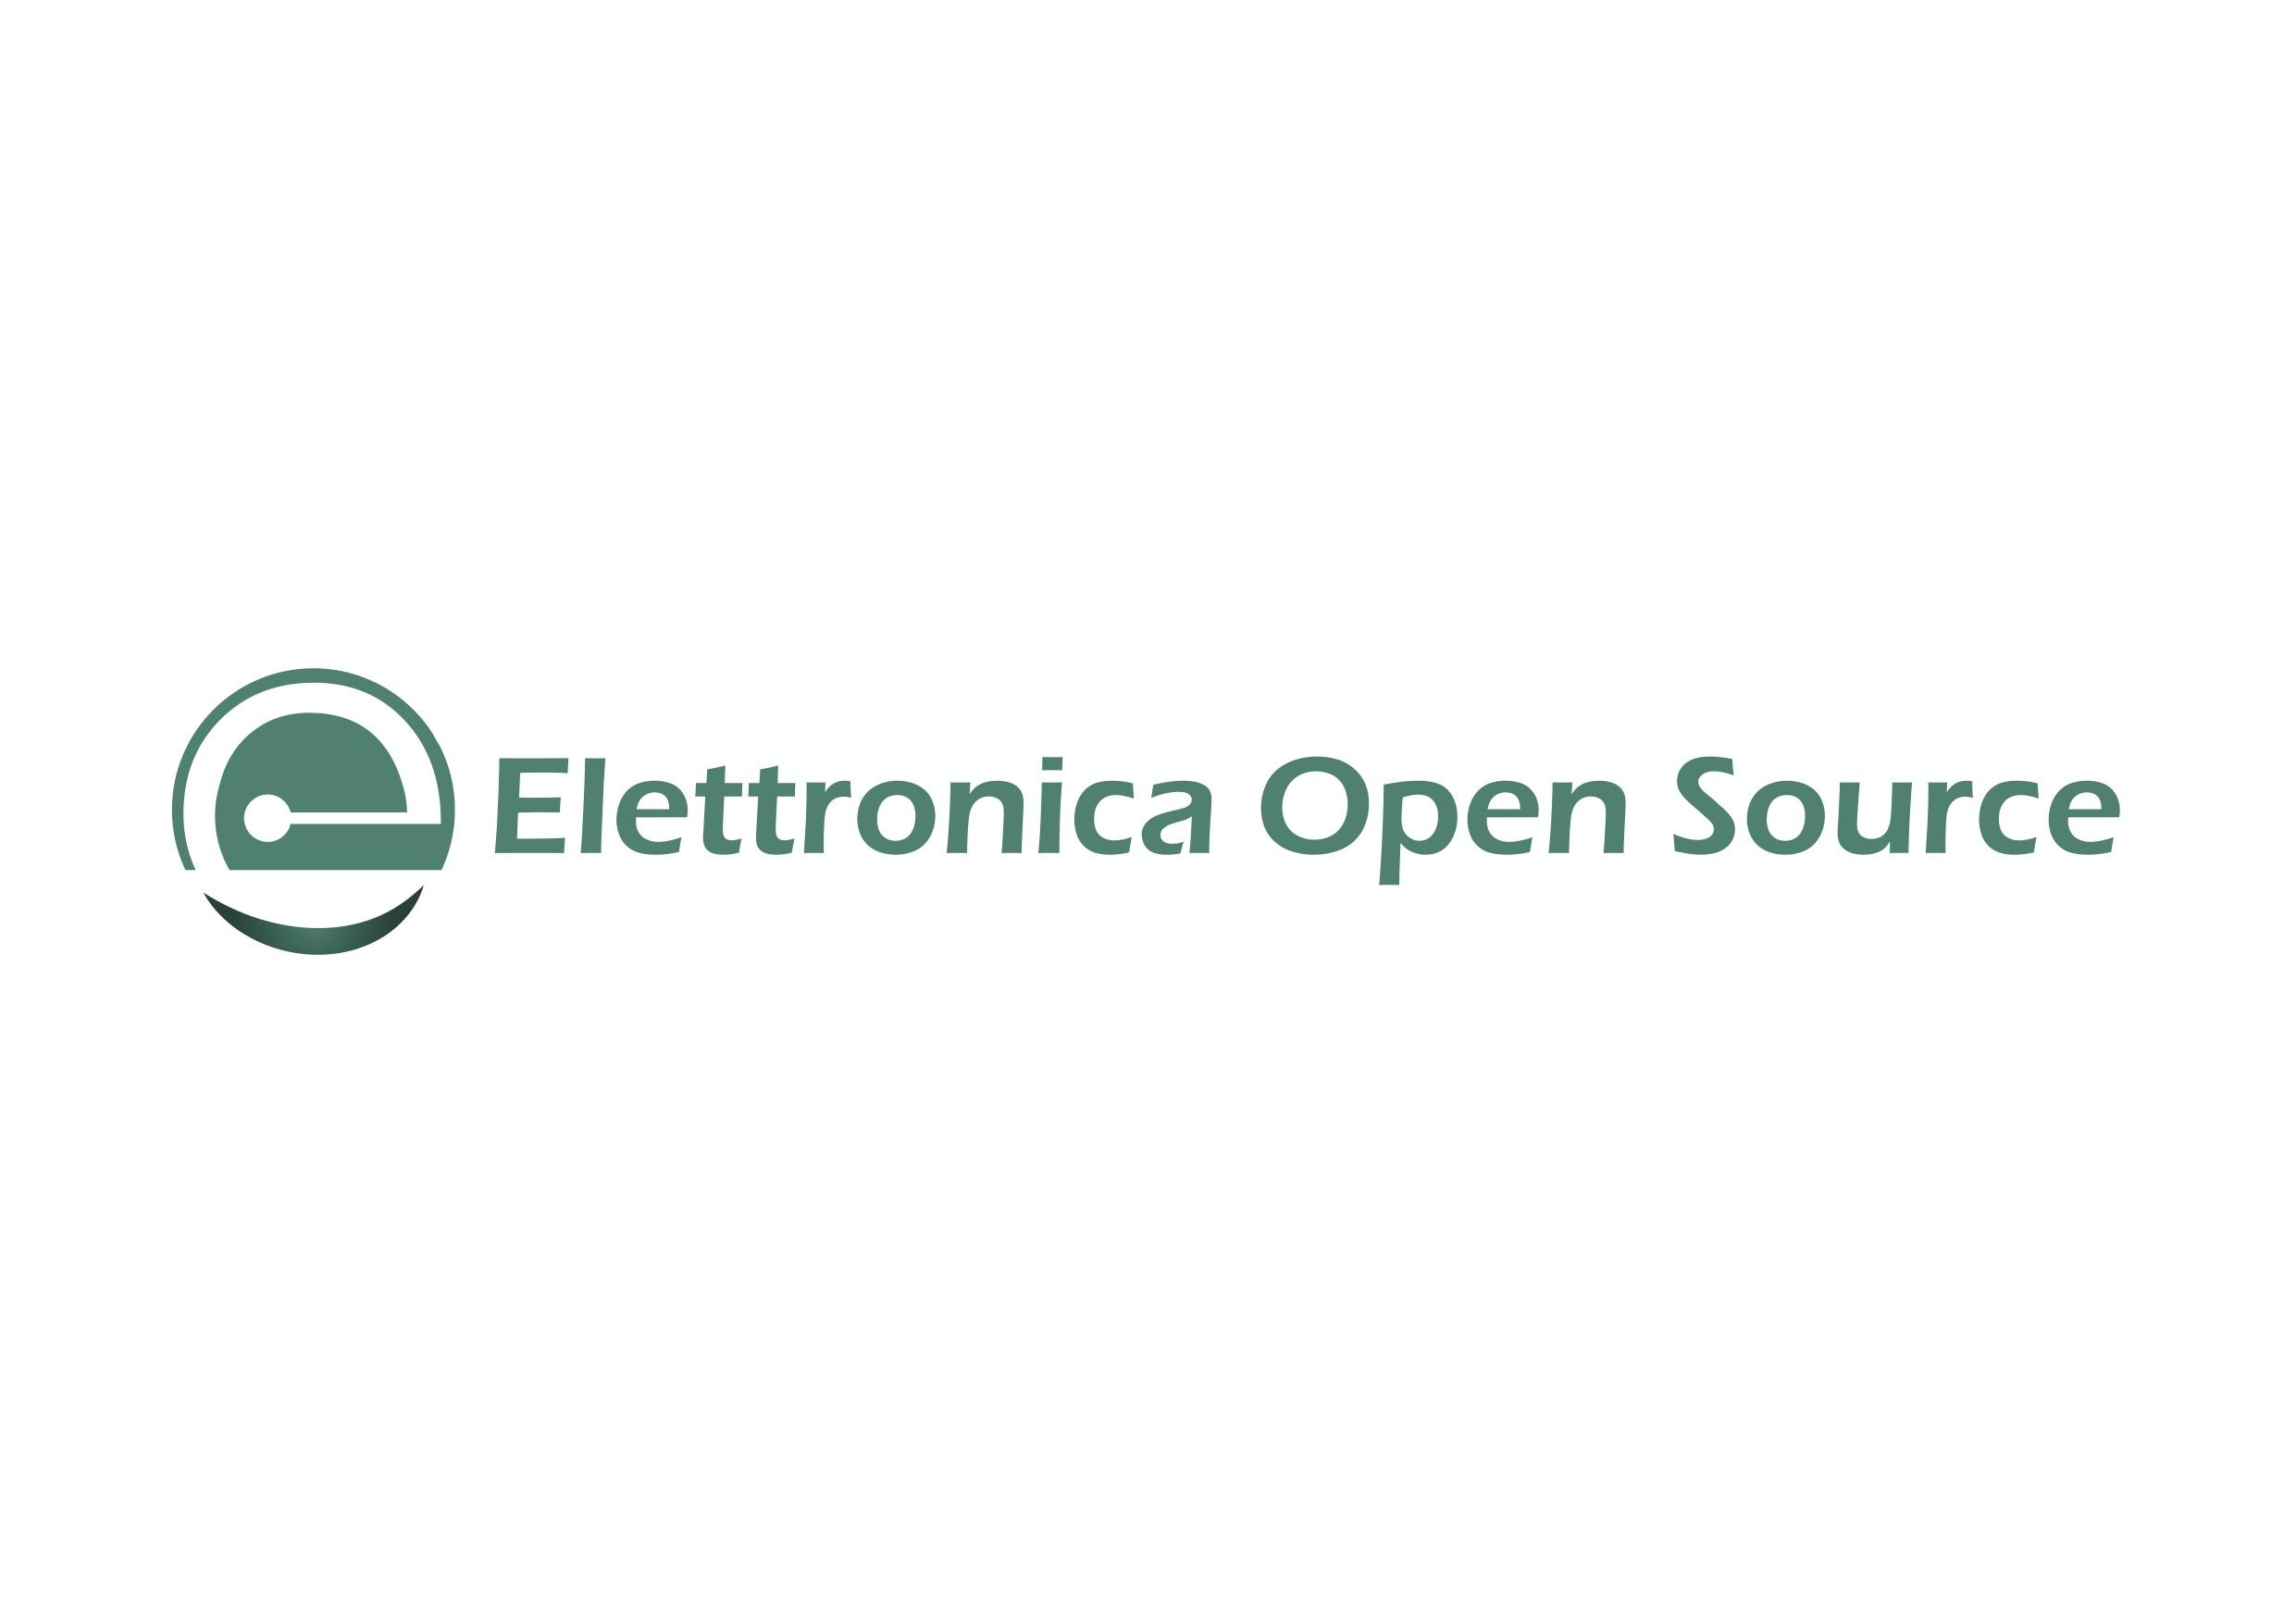 Elettronica Open Source